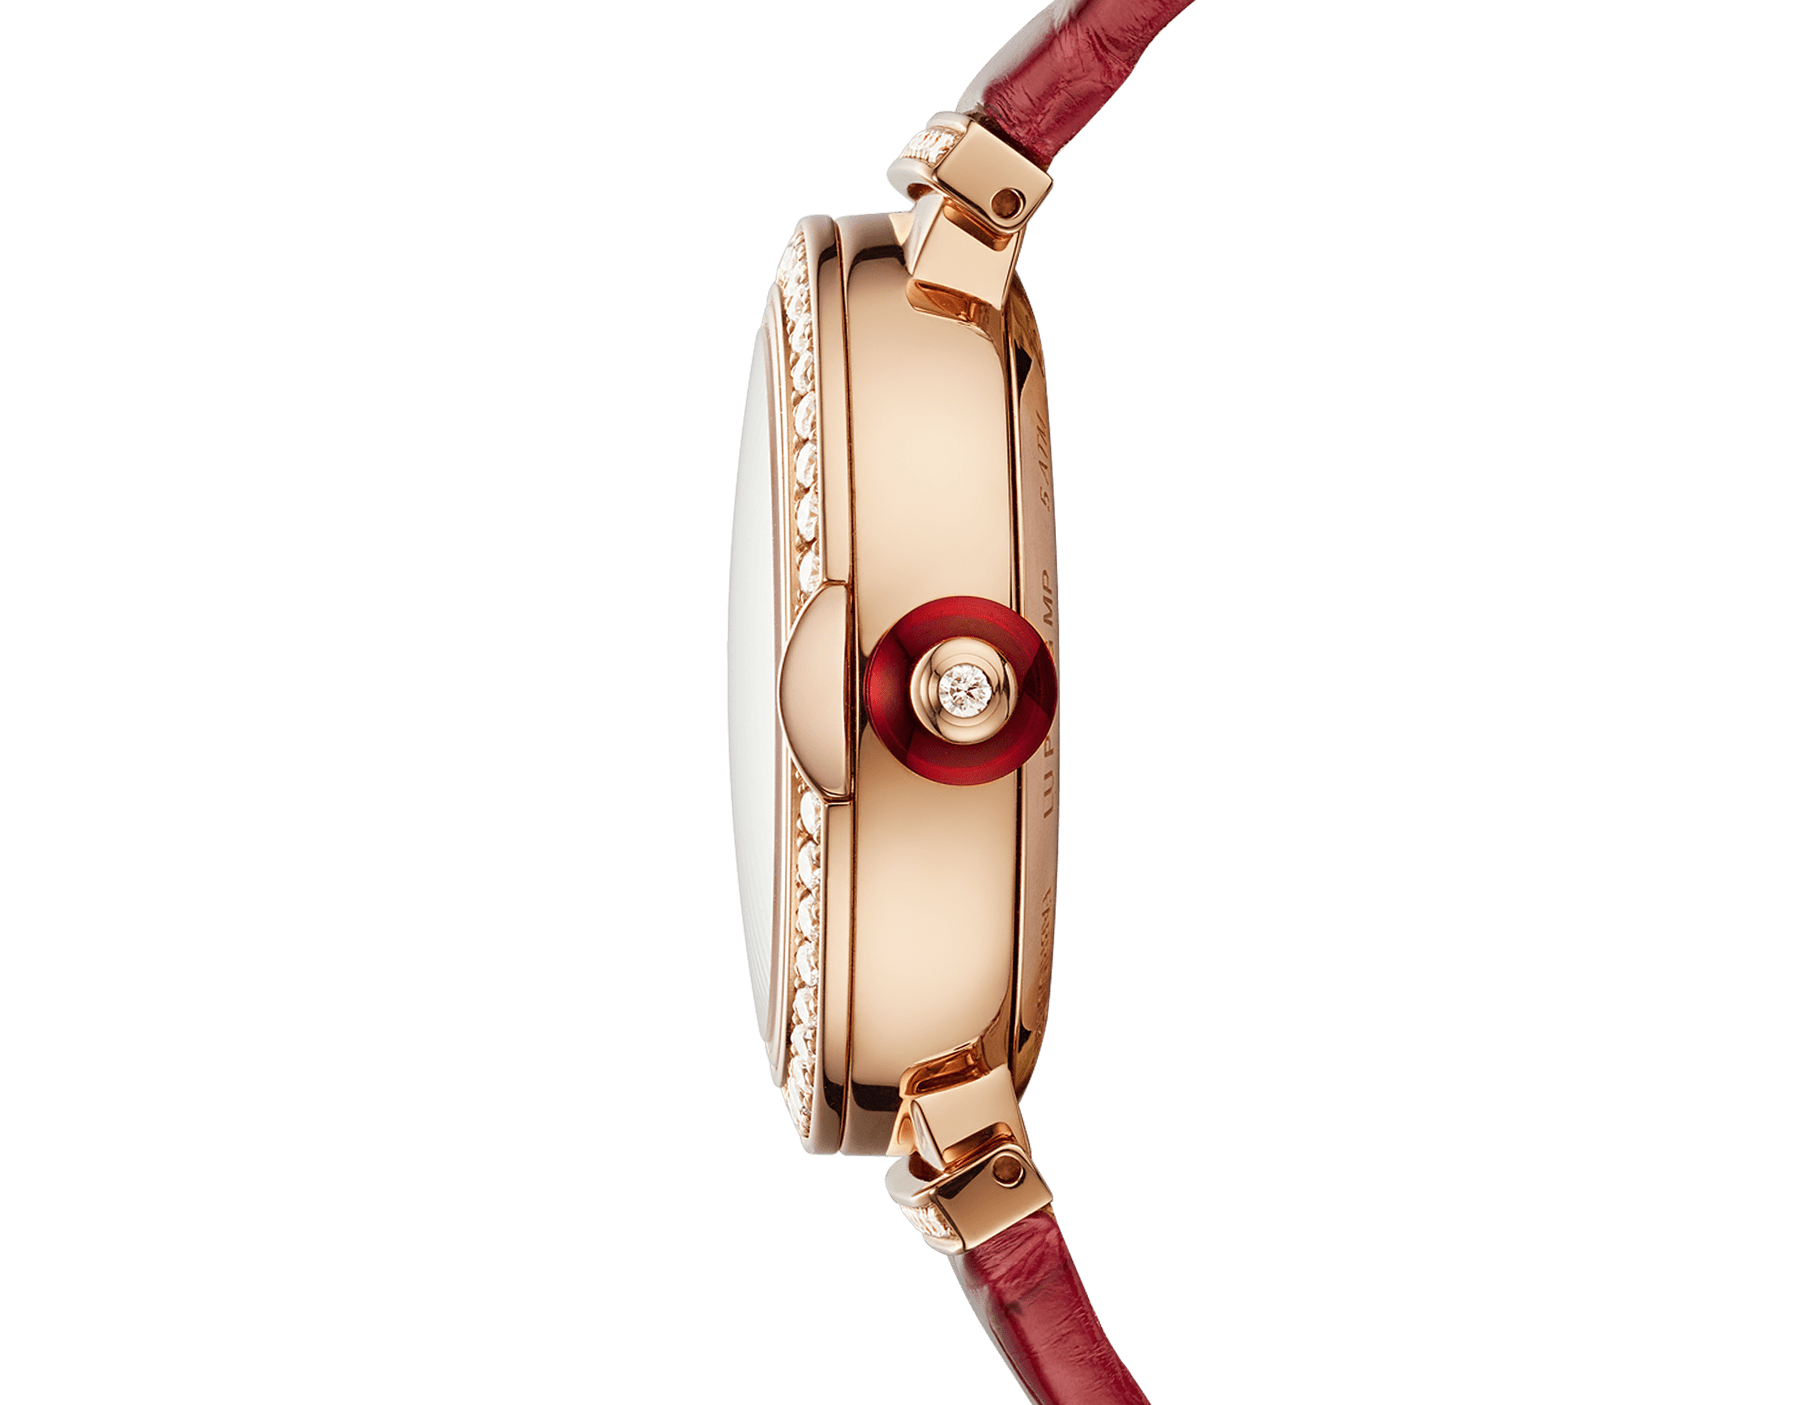 LVCEA watch with 18 kt rose gold and brilliant-cut diamond case, silver satiné soleil dial, diamond indexes and bordeaux alligator bracelet. 102329 image 3